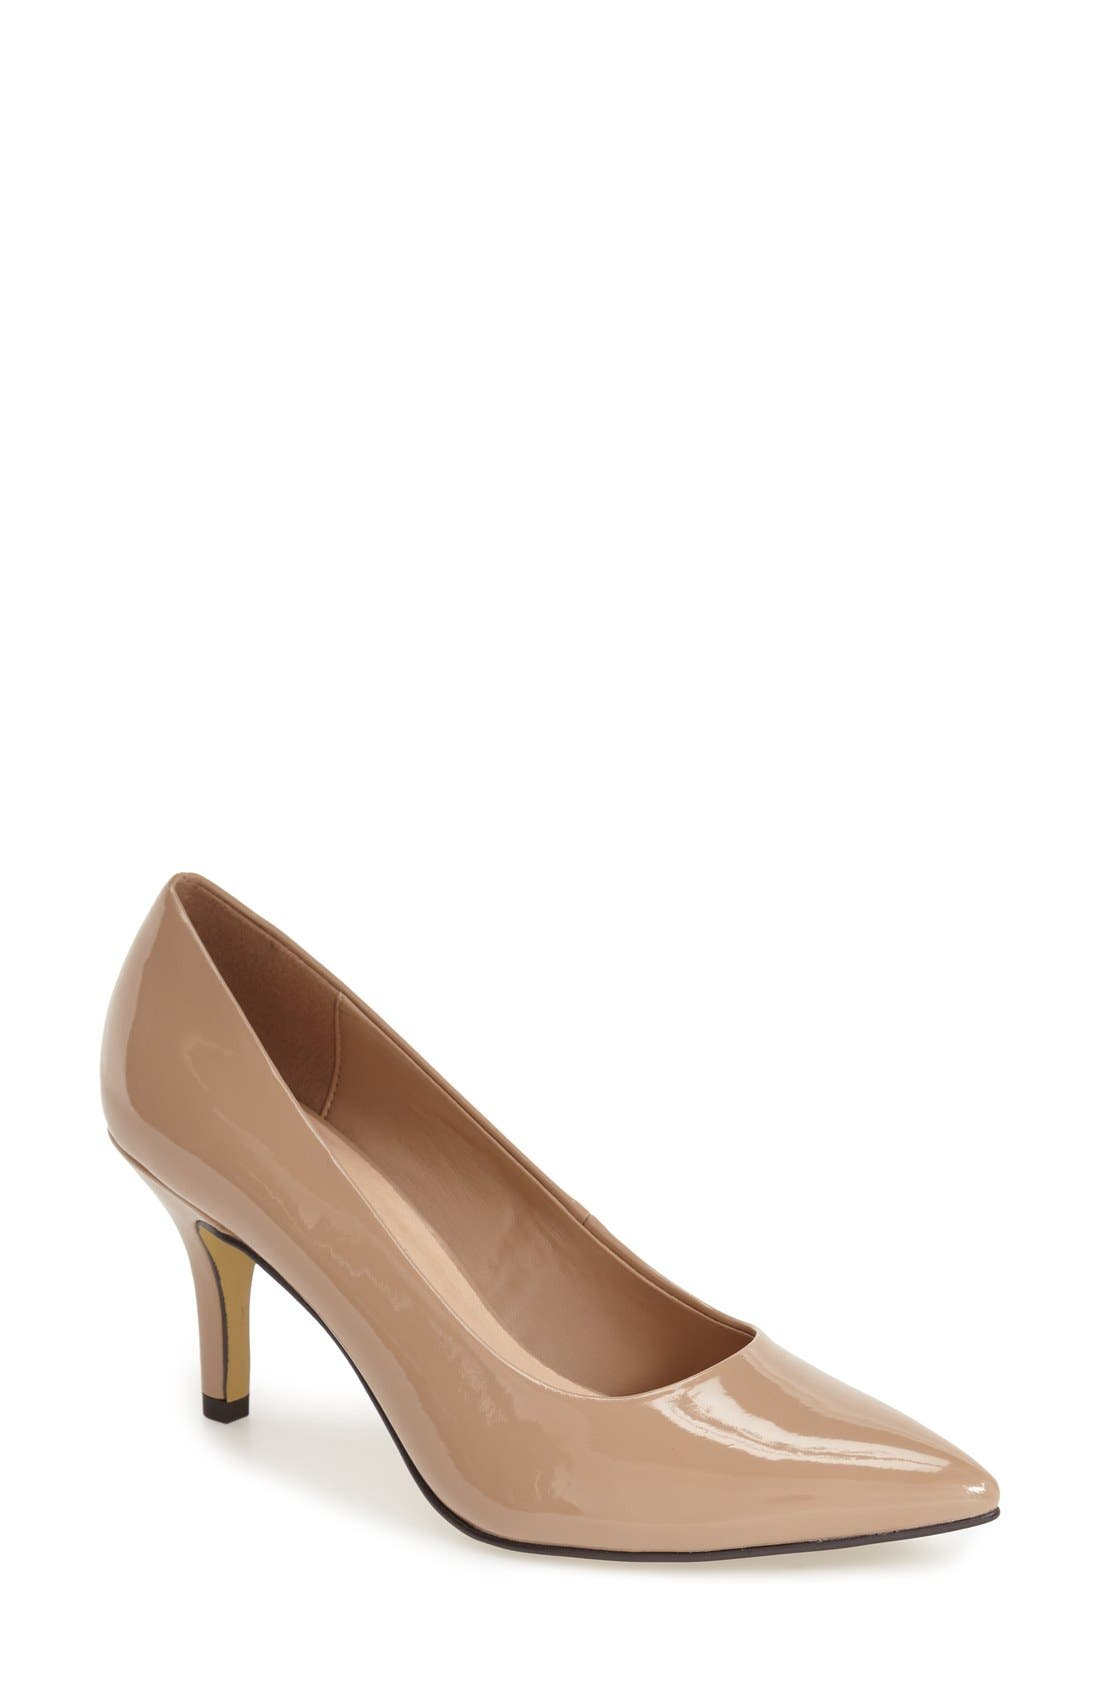 'Define' Pointy Toe Pump,                         Main,                         color, NUDE PATENT